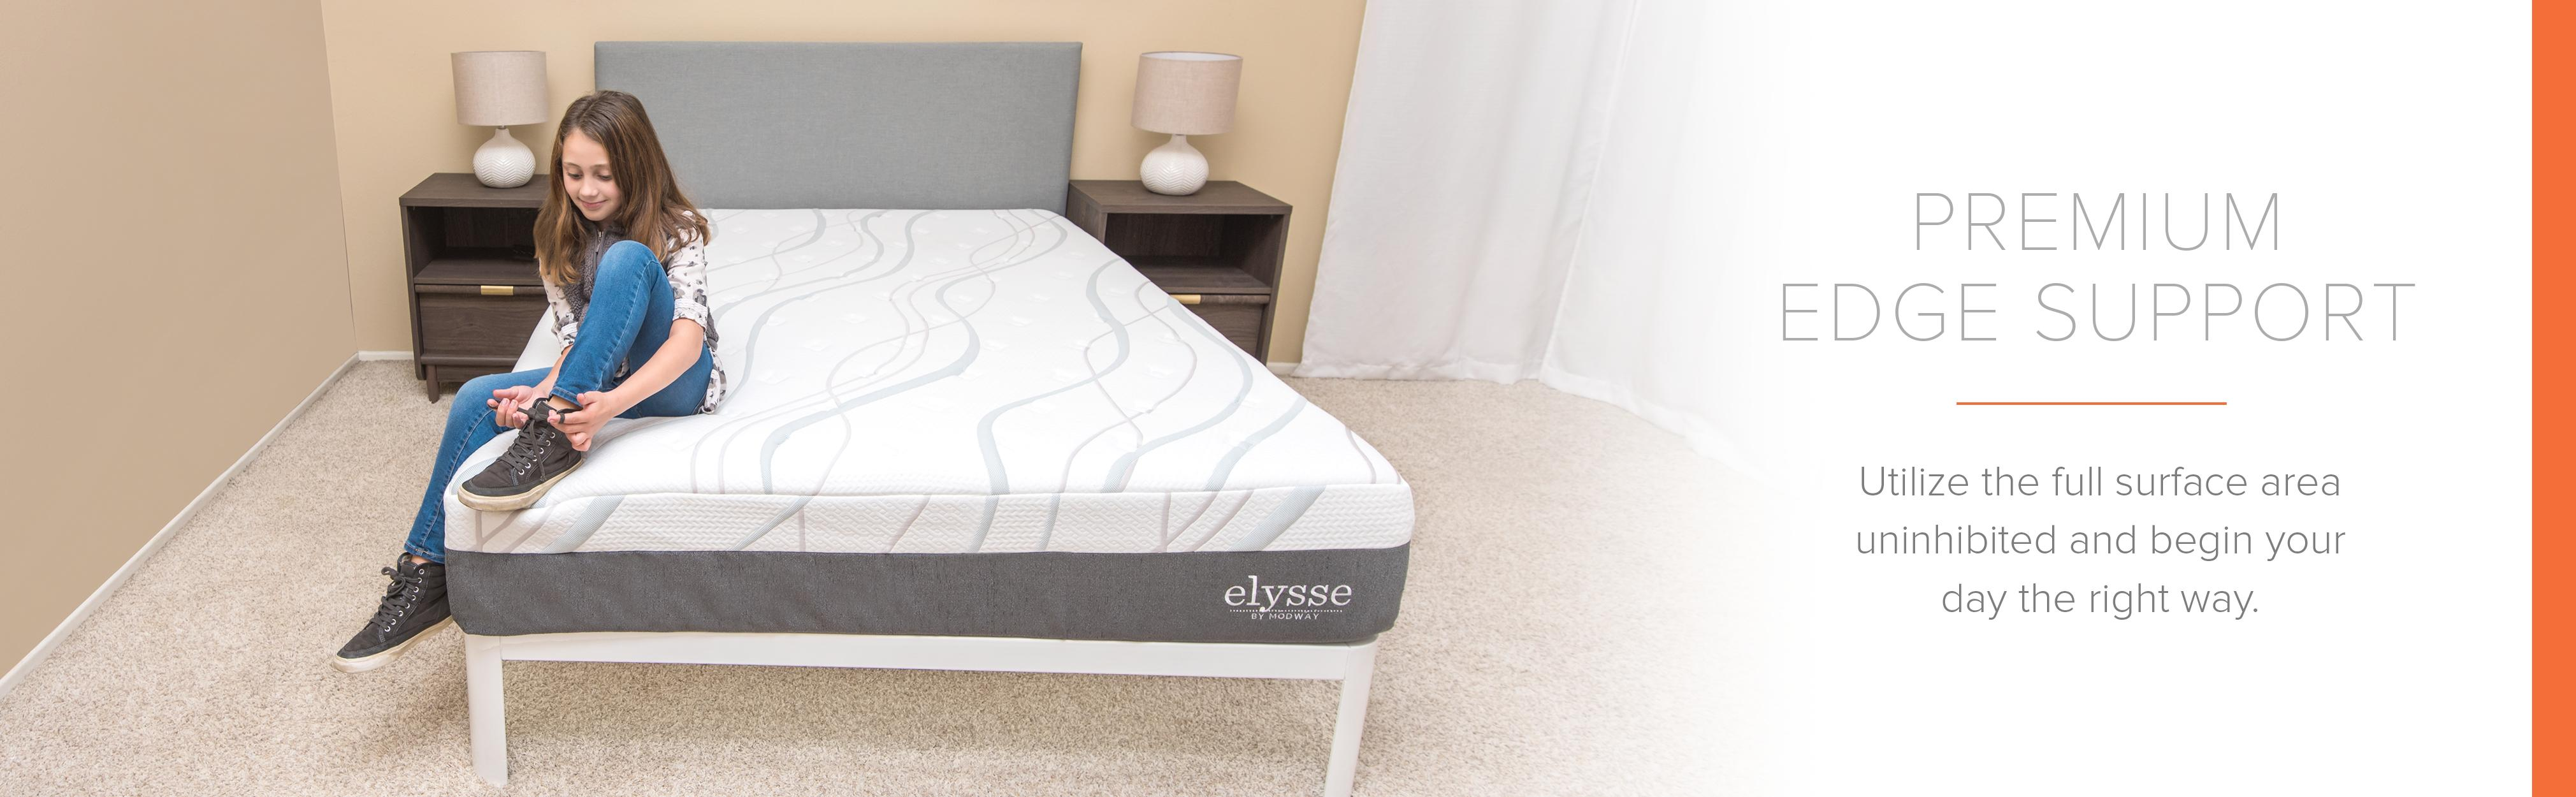 king luxury uk best value of bed cheap mattress comfortable most comfy rated full soft extremely affordable mattresses beds ever comfiest size bedding